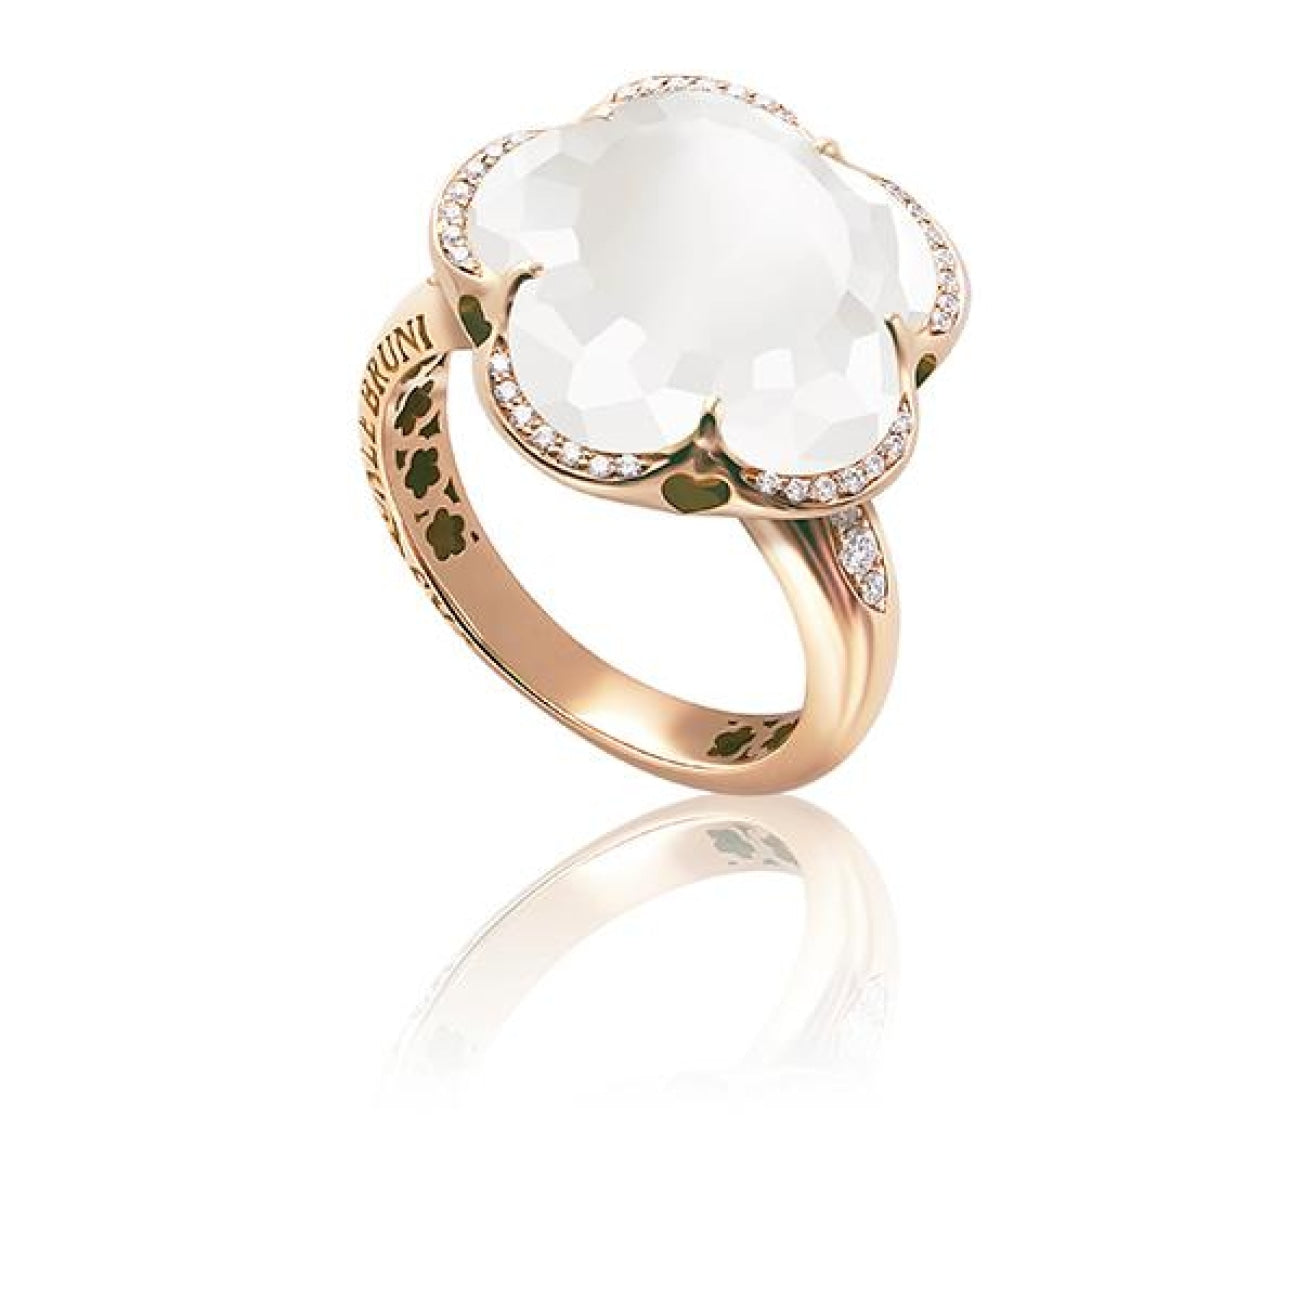 Pasquale Bruni Jewelry - Bon Ton Milky Quartz Rose Gold Ring | Manfredi Jewels